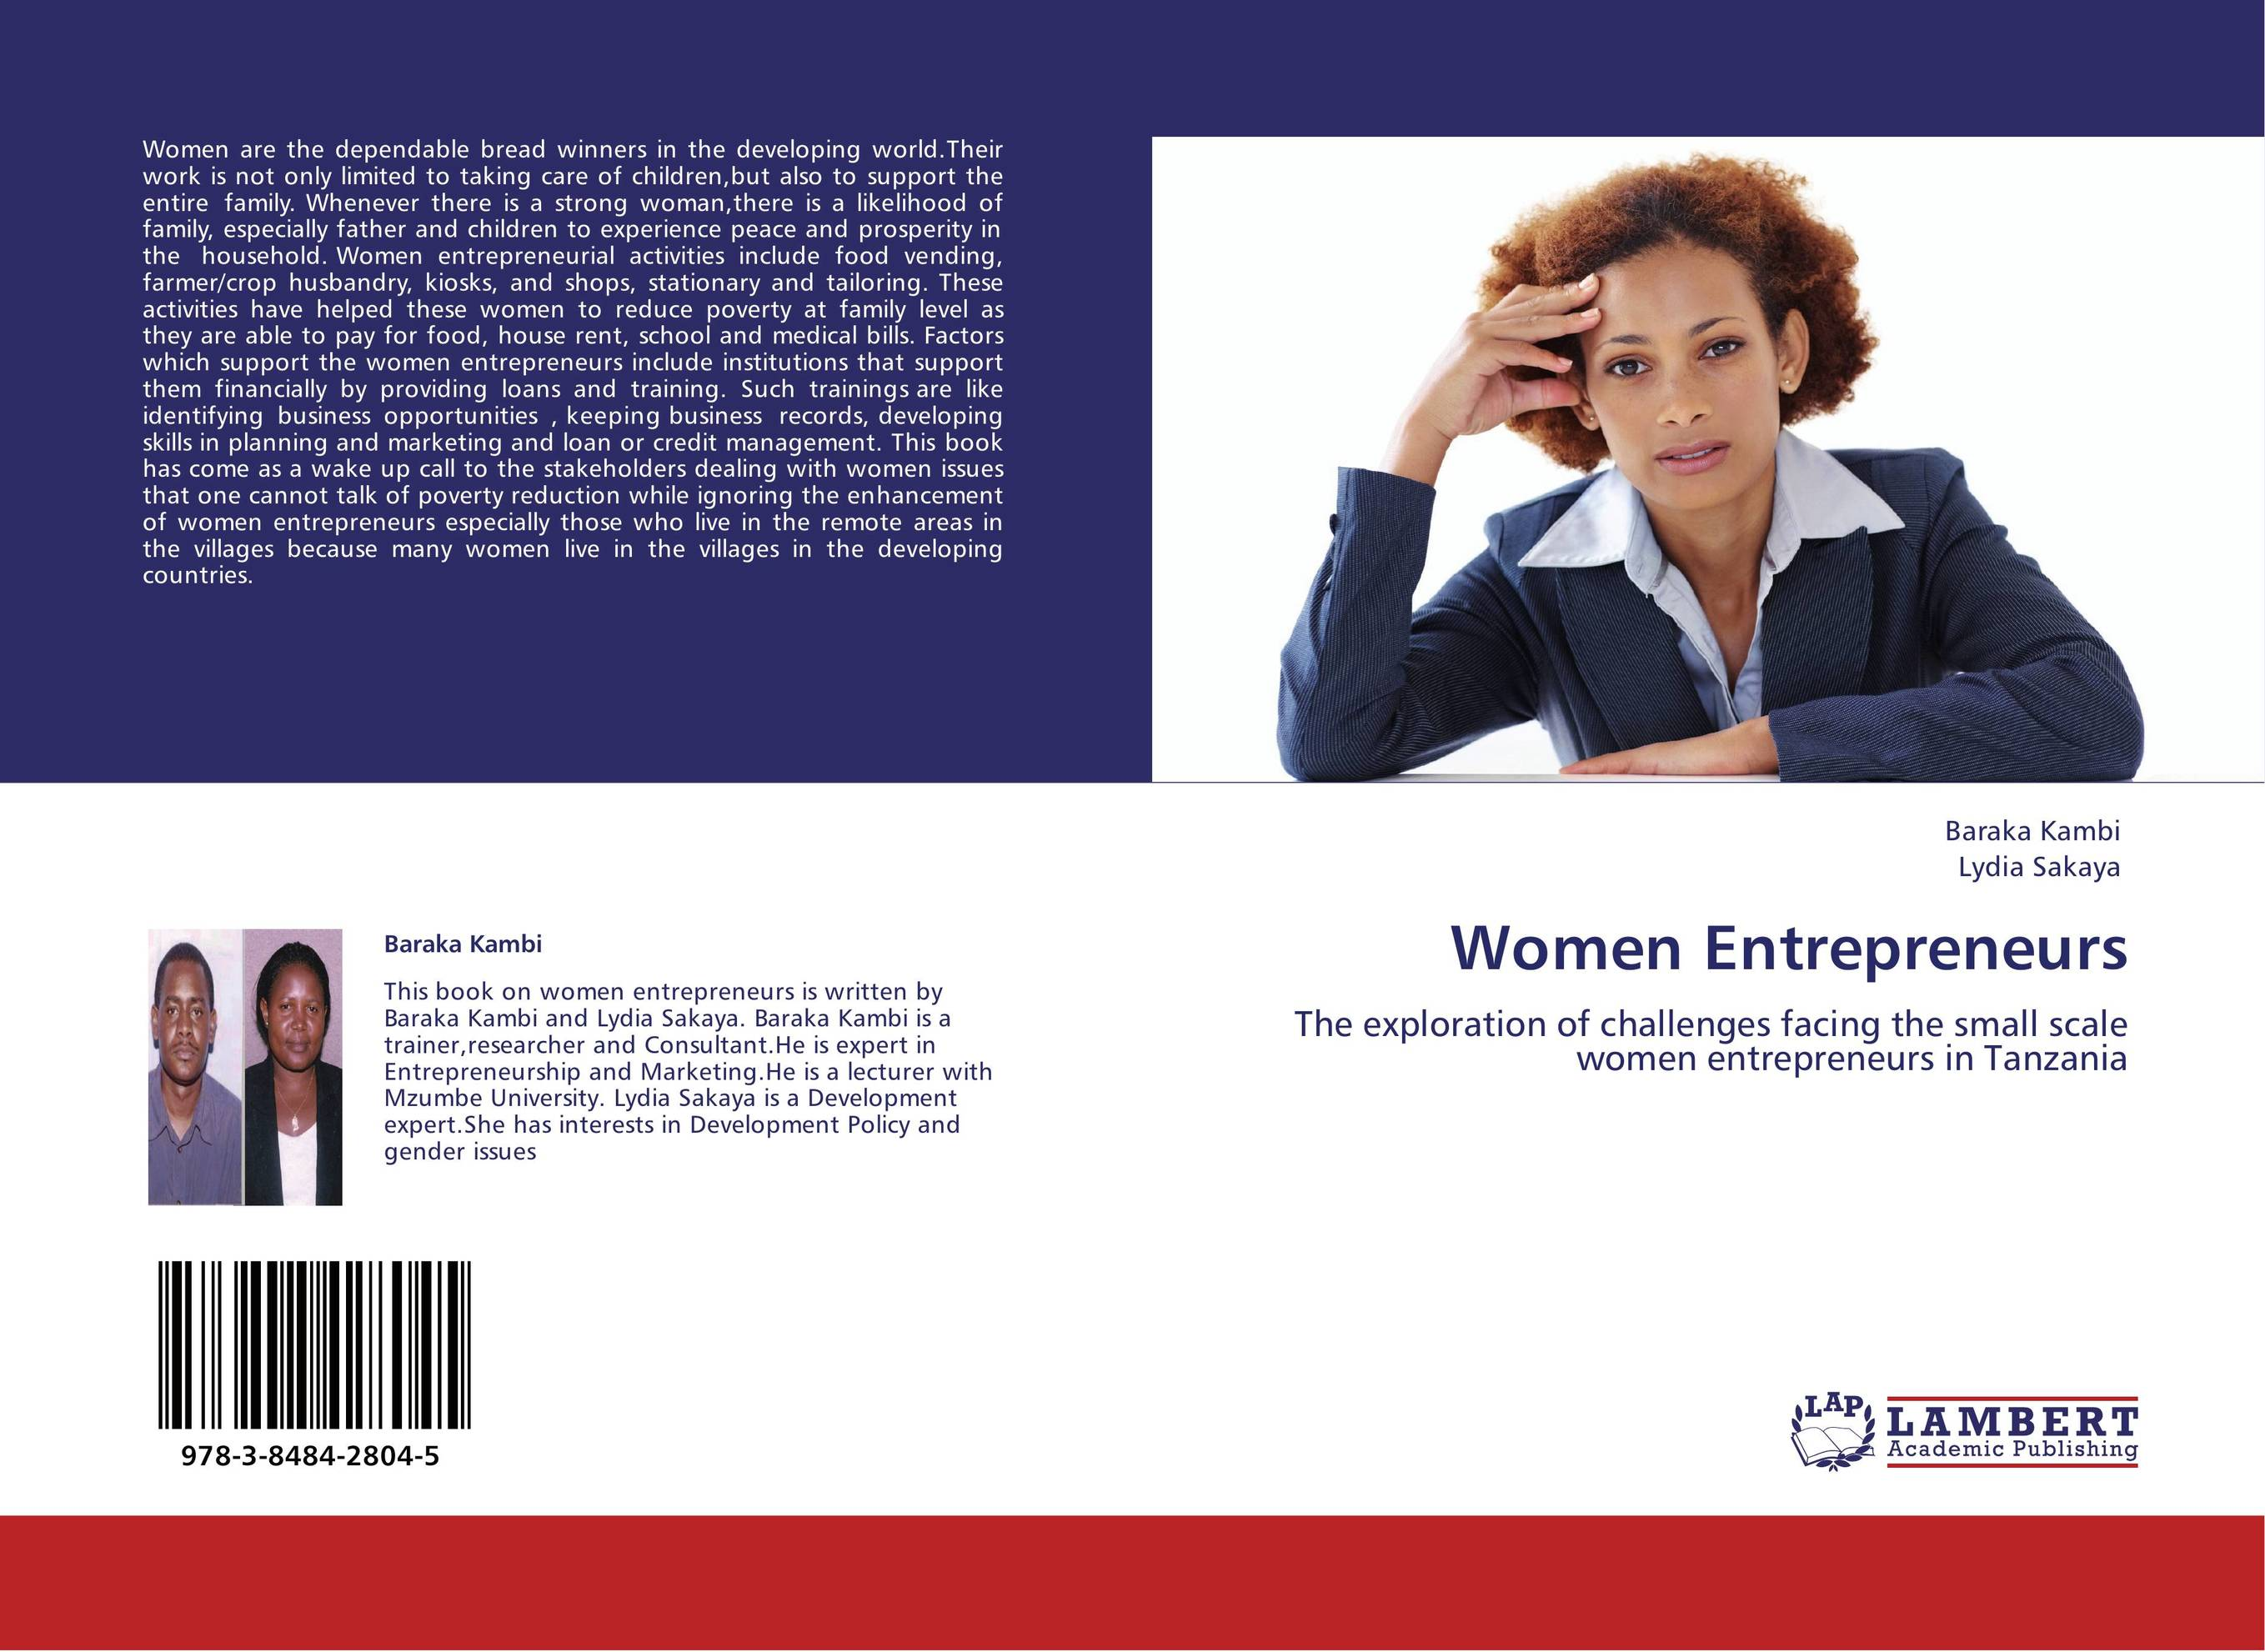 challenges faced by women entrepreneurs Despite the recognition that women entrepreneurs play a key role in economic activity, their growth has remained significantly subdued this has been a result of the many gender related challenges they face in the competitive business world with their male counterparts.